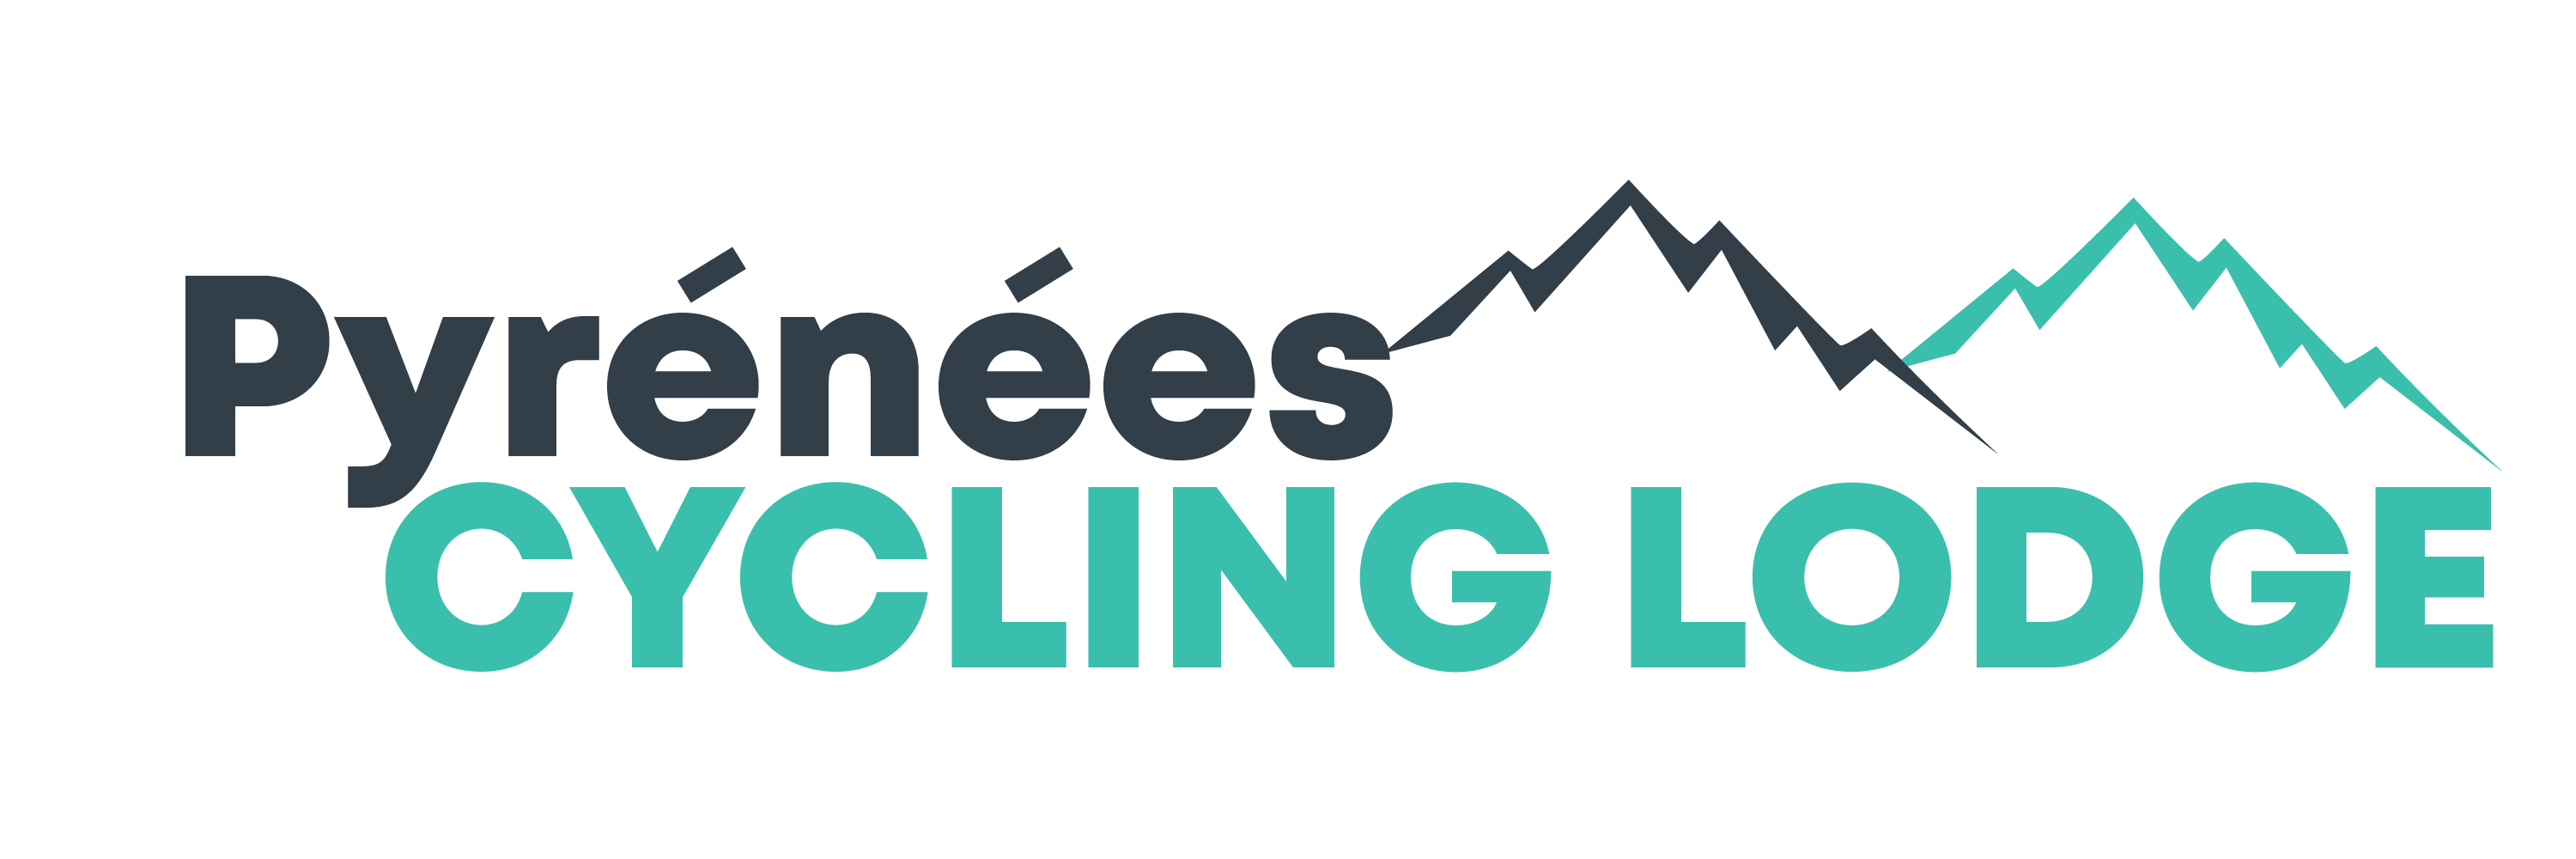 Pyrenees Cycling Lodge Logo